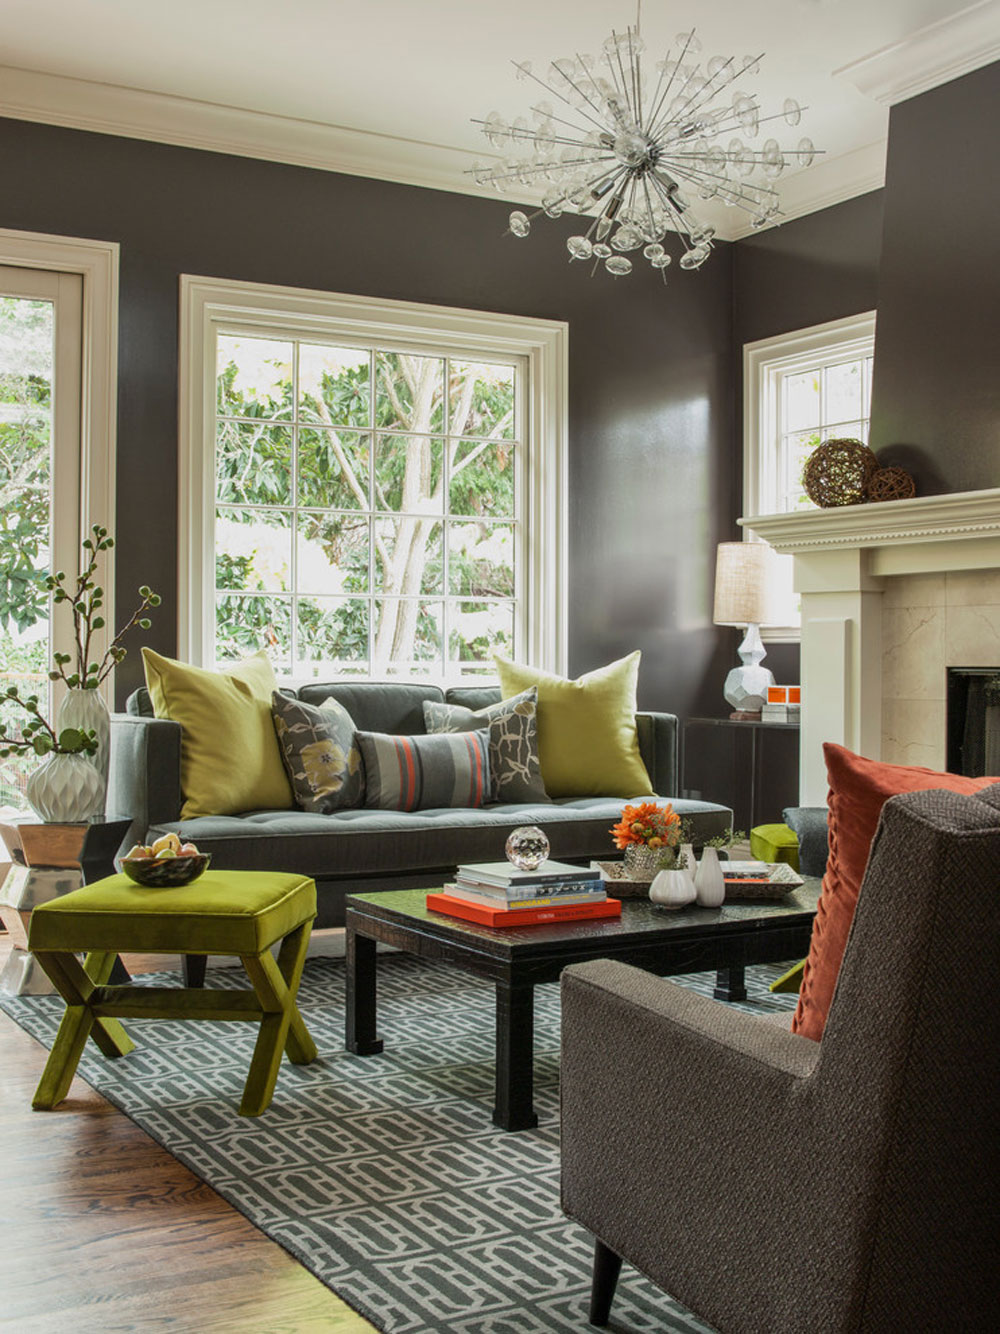 Funky-and-fun-living-room-by-Ann-Lowengart-Interiors-2 Small apartment living room ideas on a budget